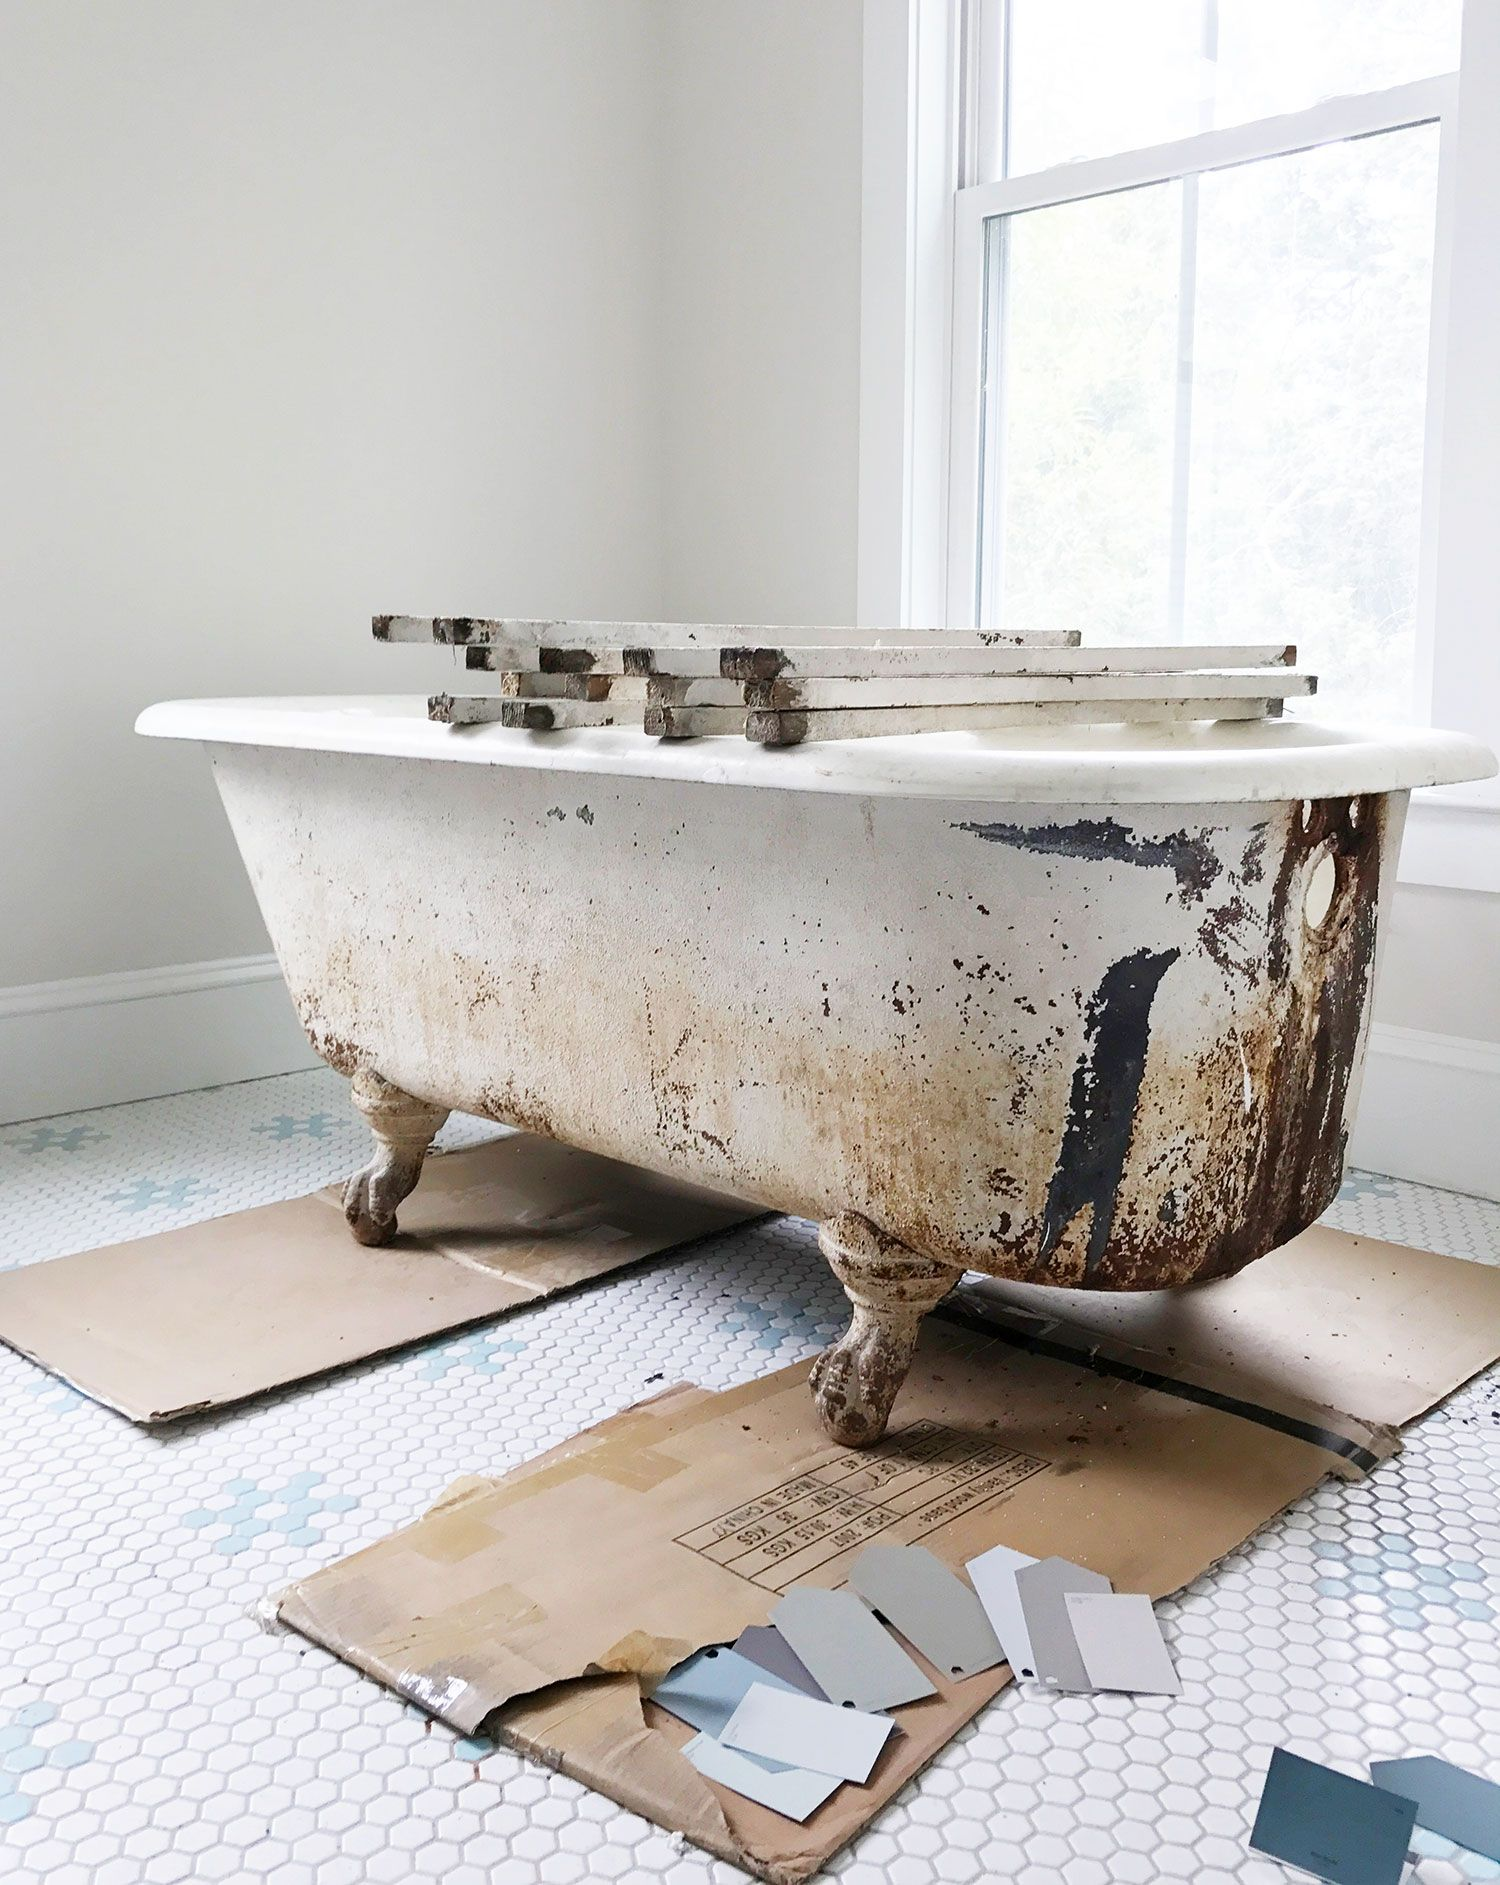 How To Refinish A Nasty, Old Clawfoot Tub | DIY Ideas | Pinterest ...